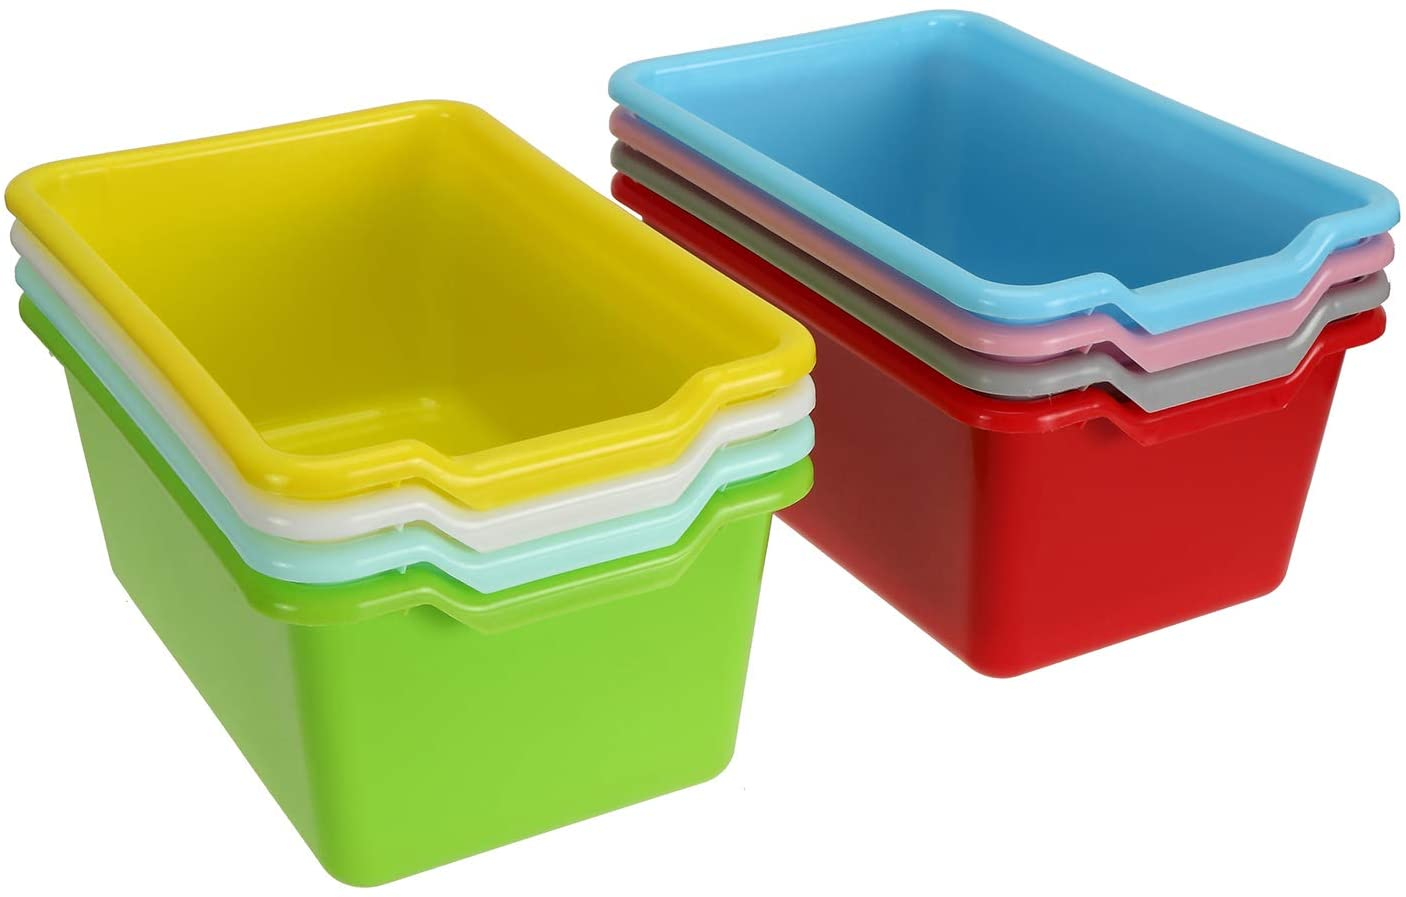 WUWEOT 8 Pack Scoop-Front Storage Bins, Easy-to-Grip Design Multipurpose Stackable Plastic Storage Cubbies for Classroom, Nursery, Playrooms and Home Organization